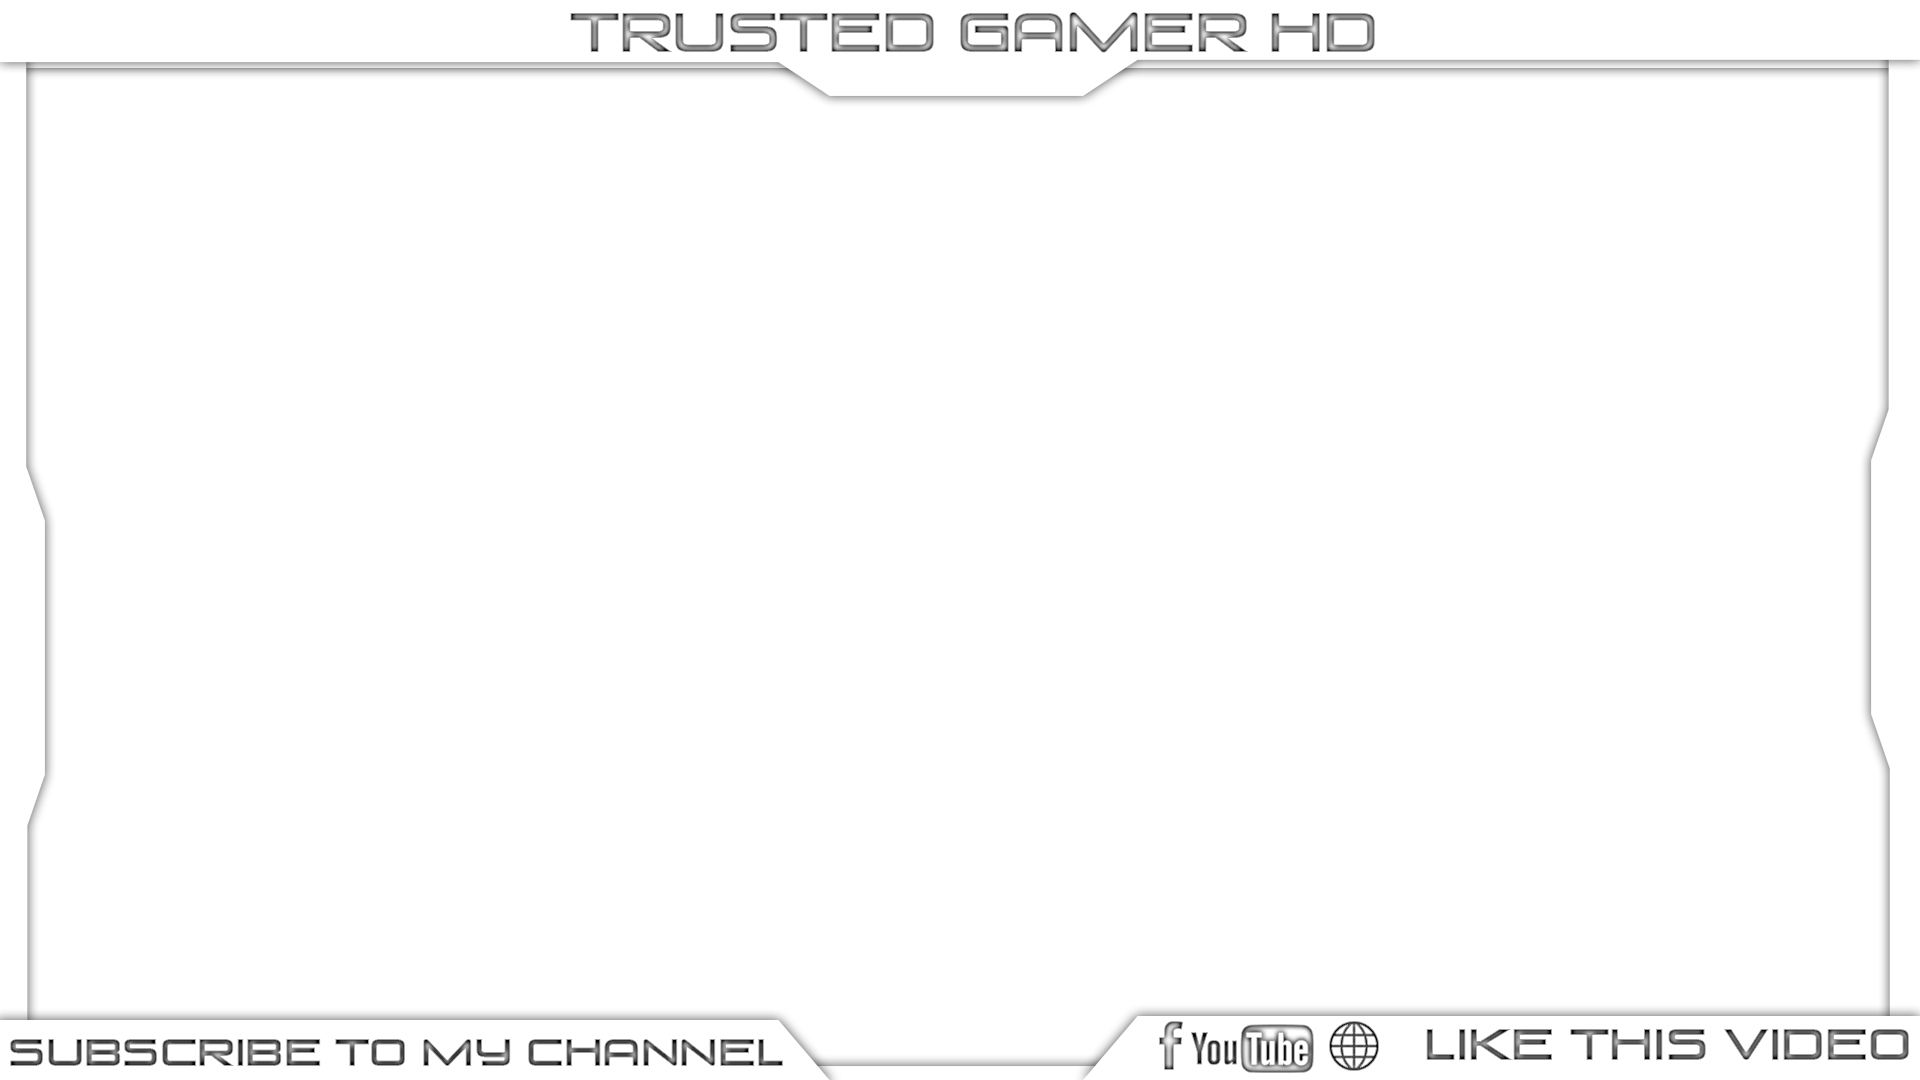 Trusted gamer hd by. Video frame png